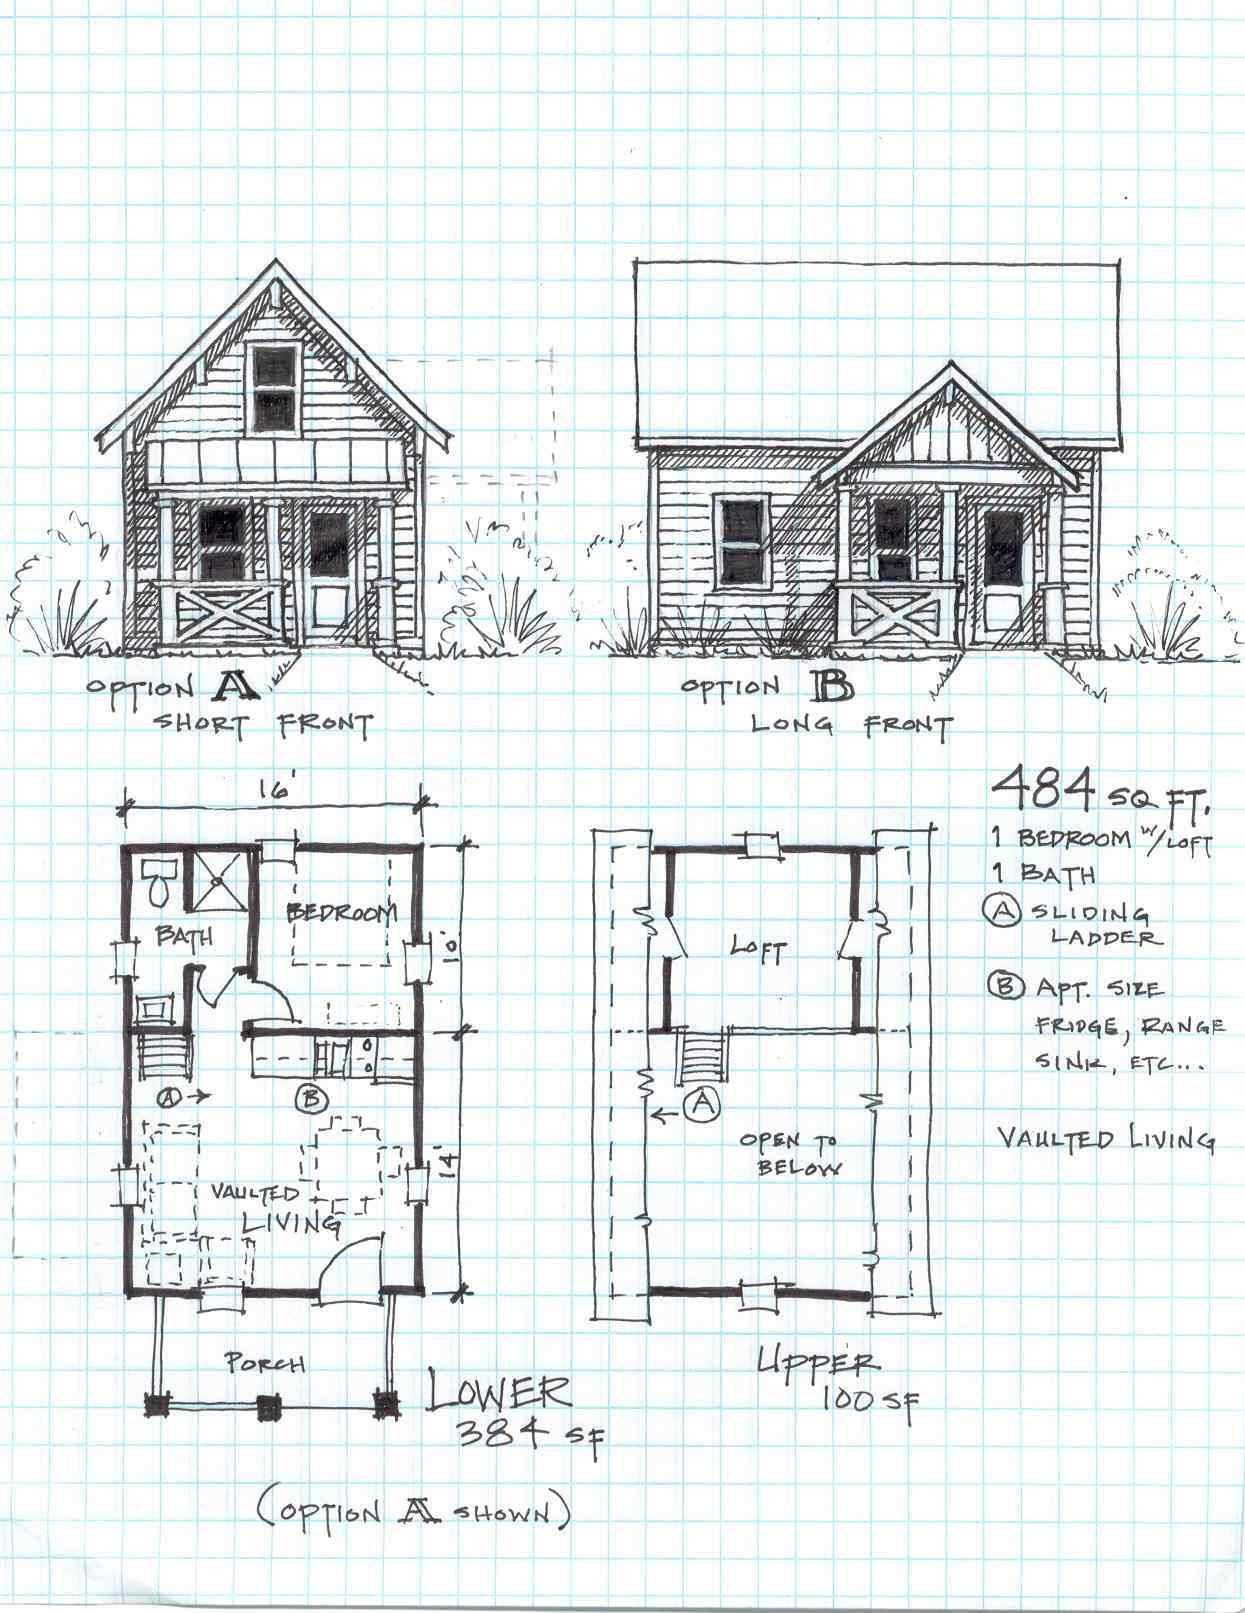 30 Small Cabin Plans For The Homestead Prepper The Survivalist Blog Small Cabin Plans Small House Floor Plans Cabin Floor Plans